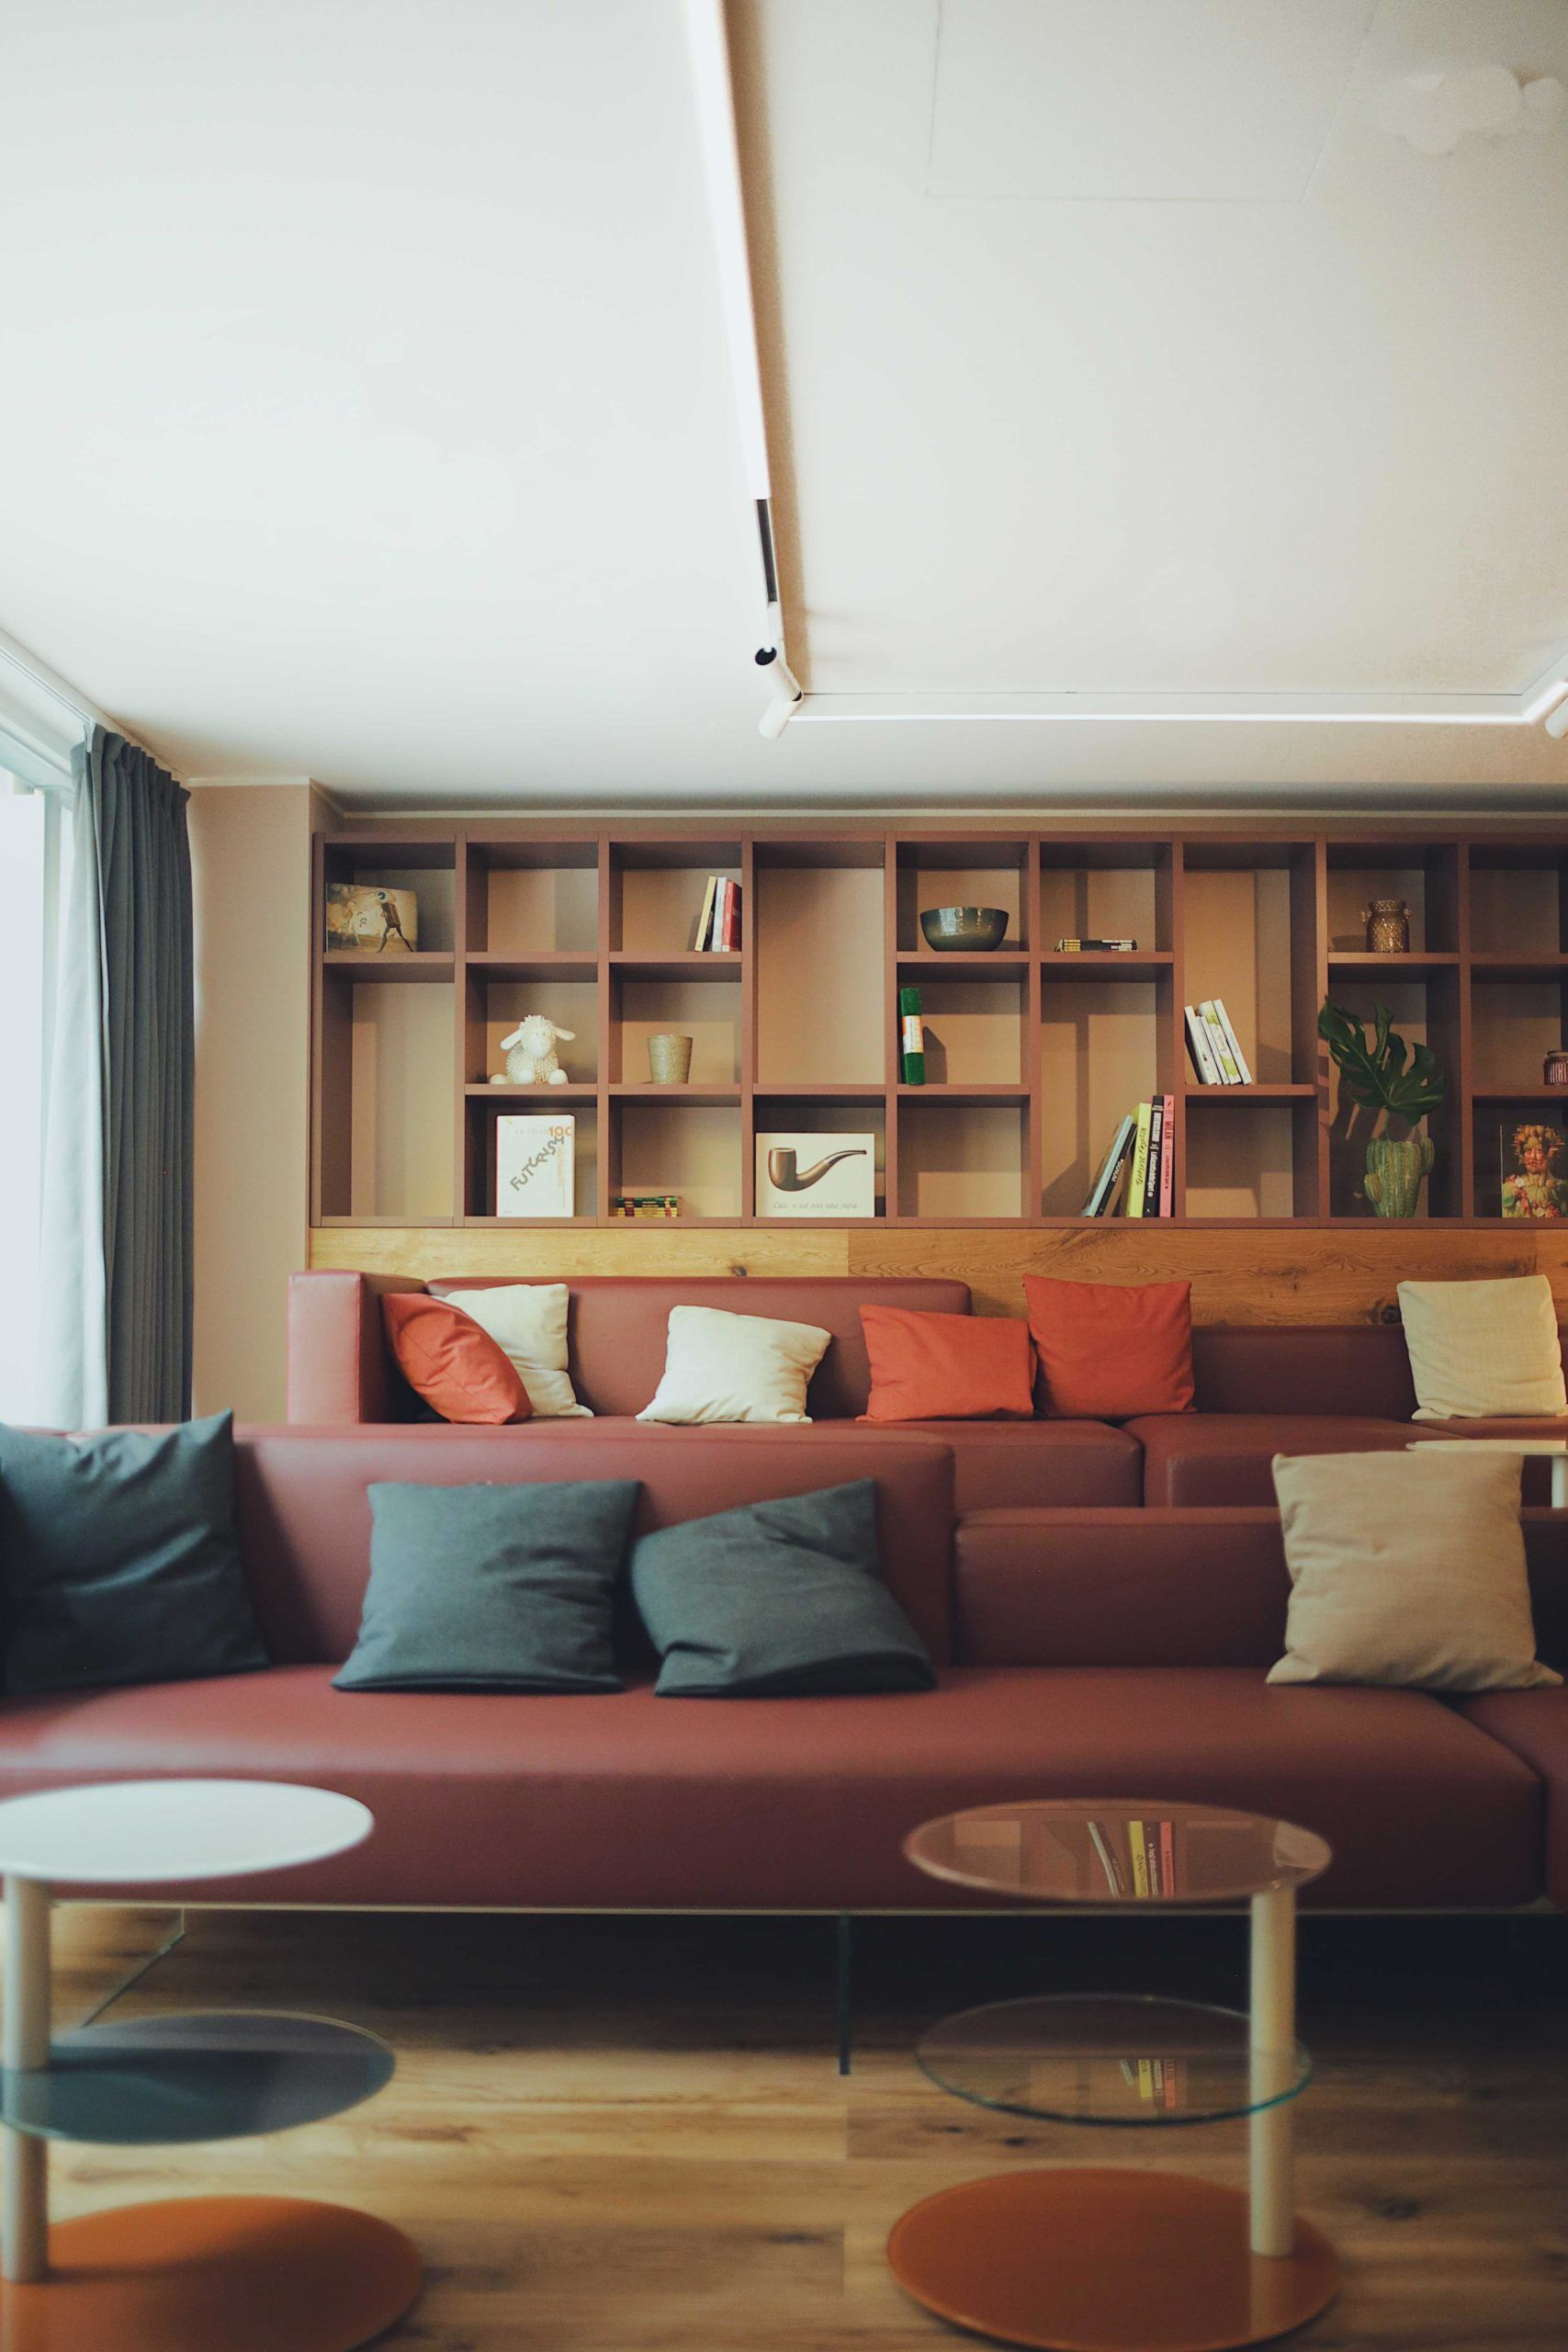 Affordable Design Hotel In Milan And 5 Tips To Visit Milan Stay At 21 Wol Milan Hotel Hotels Design Affordable Design